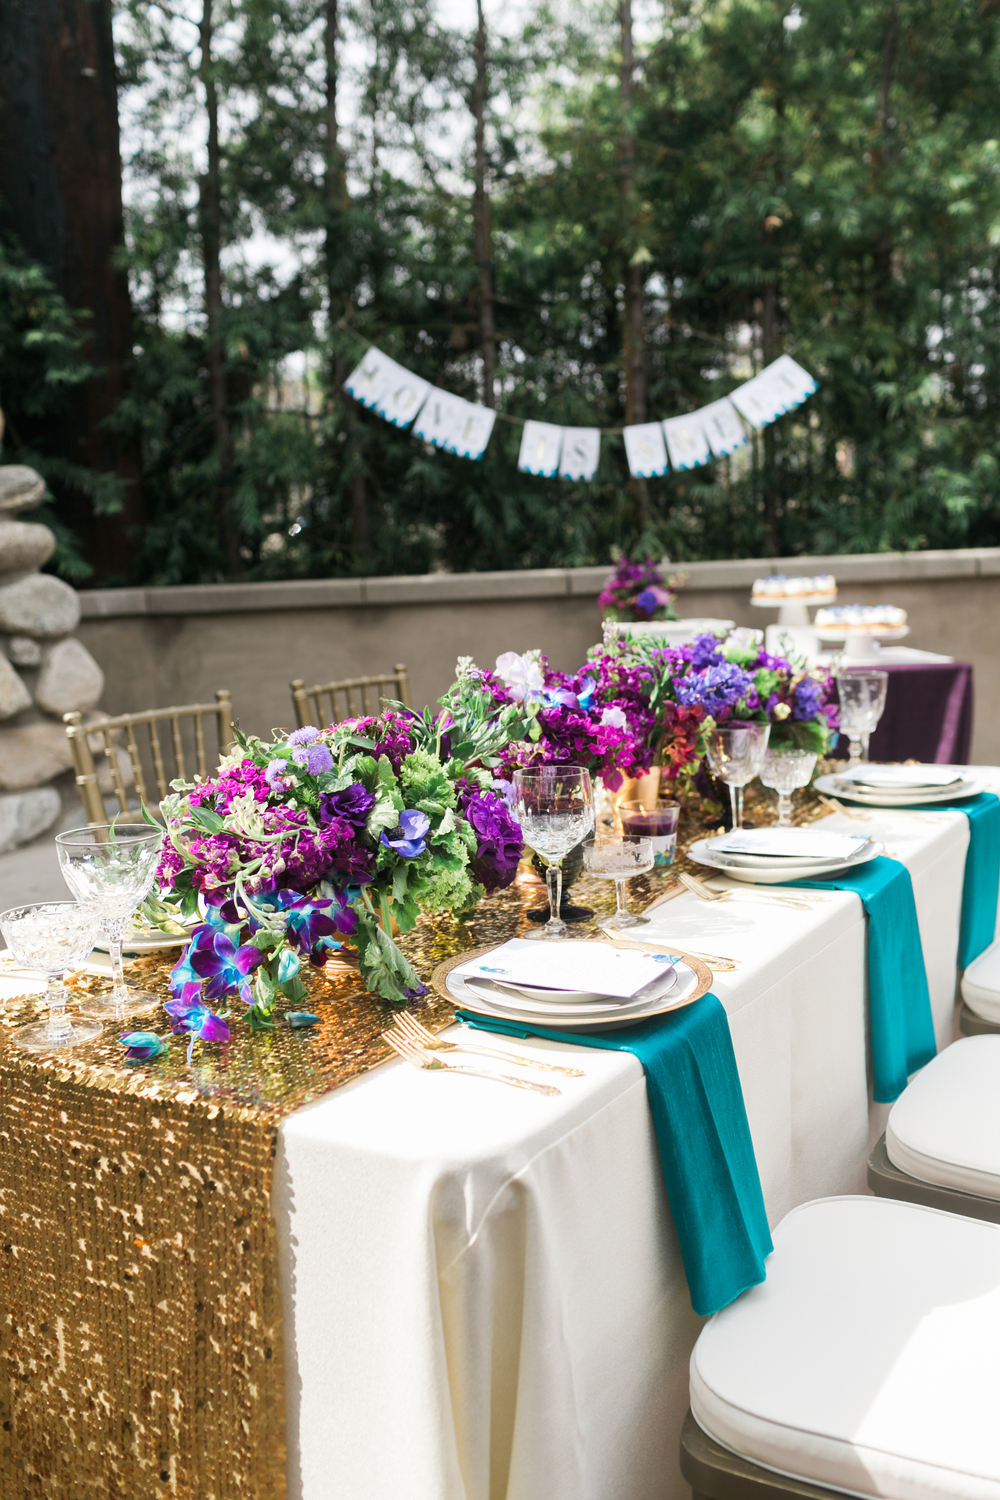 skyboxeventproductions.com | Peacock Inspired Engagement Party Ideas | Skybox Event Productions Wedding and Event Planning | Sarina Love Photography | Los Angeles and Southern California Party Design